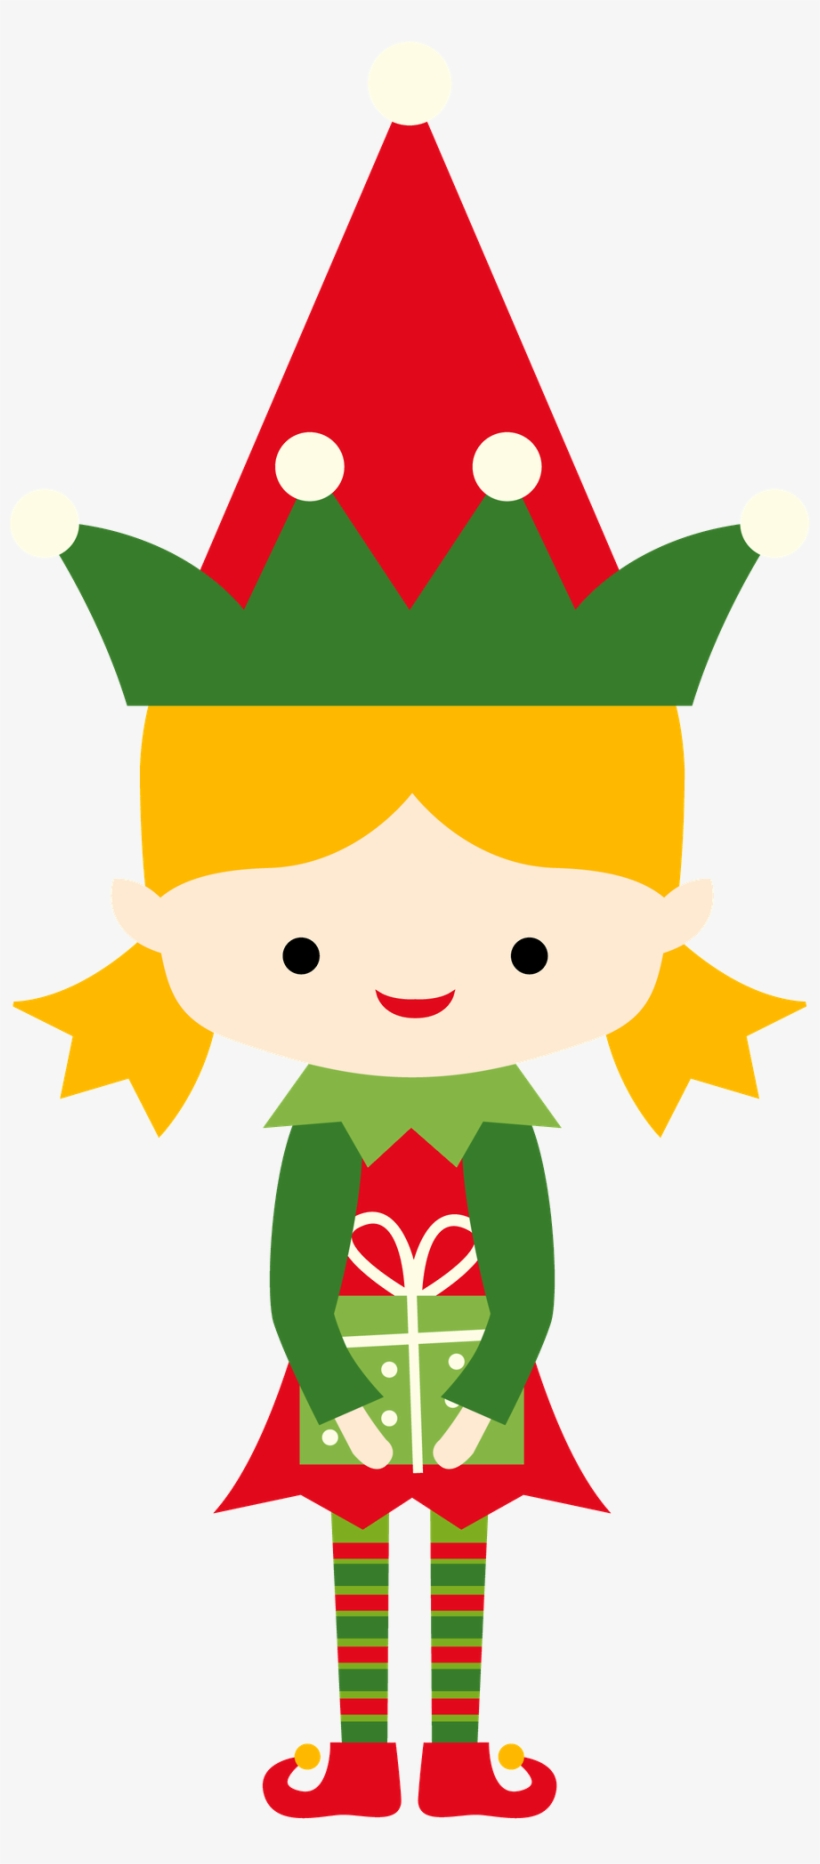 Girl christmas elf clipart png transparent library Christmas Girl Elf Clip Art - Christmas Girl Elf Clipart Transparent ... png transparent library